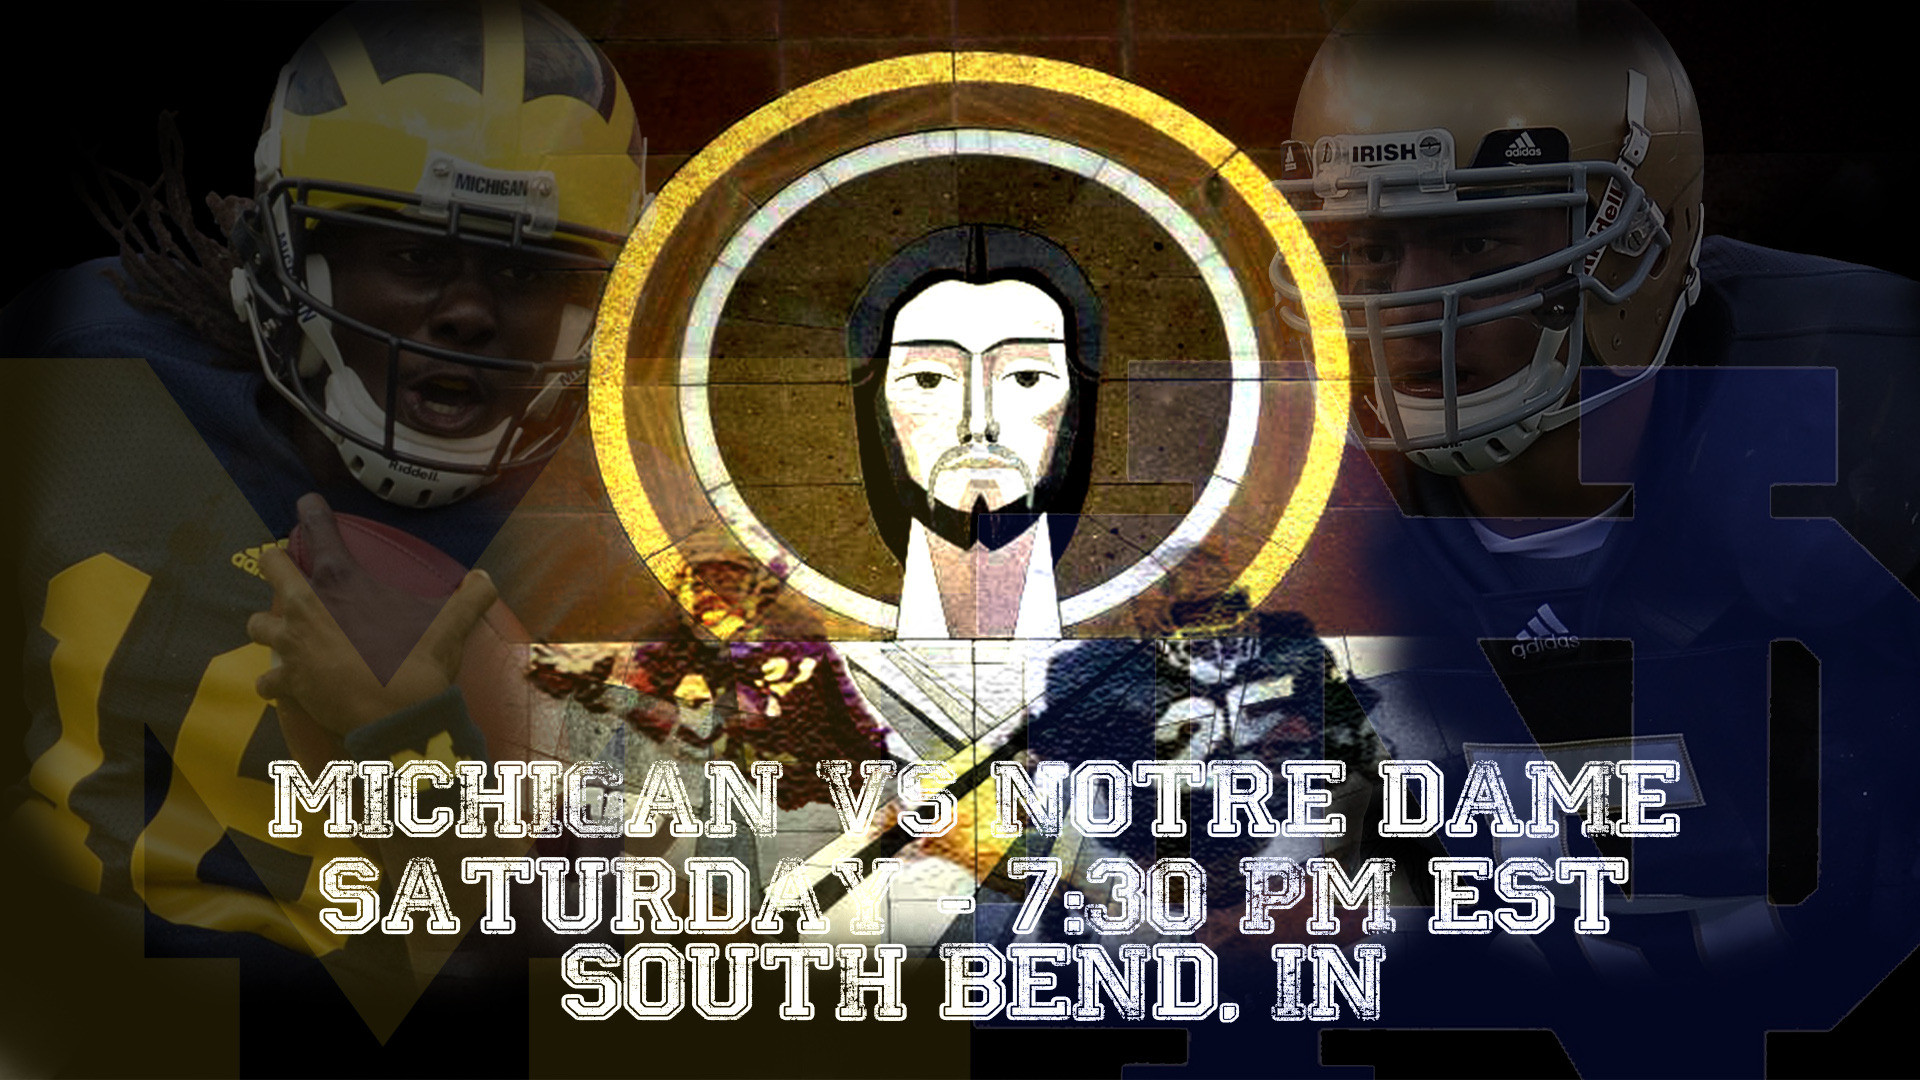 ND wallpaper – Irish Envy | Notre Dame Football Discussion